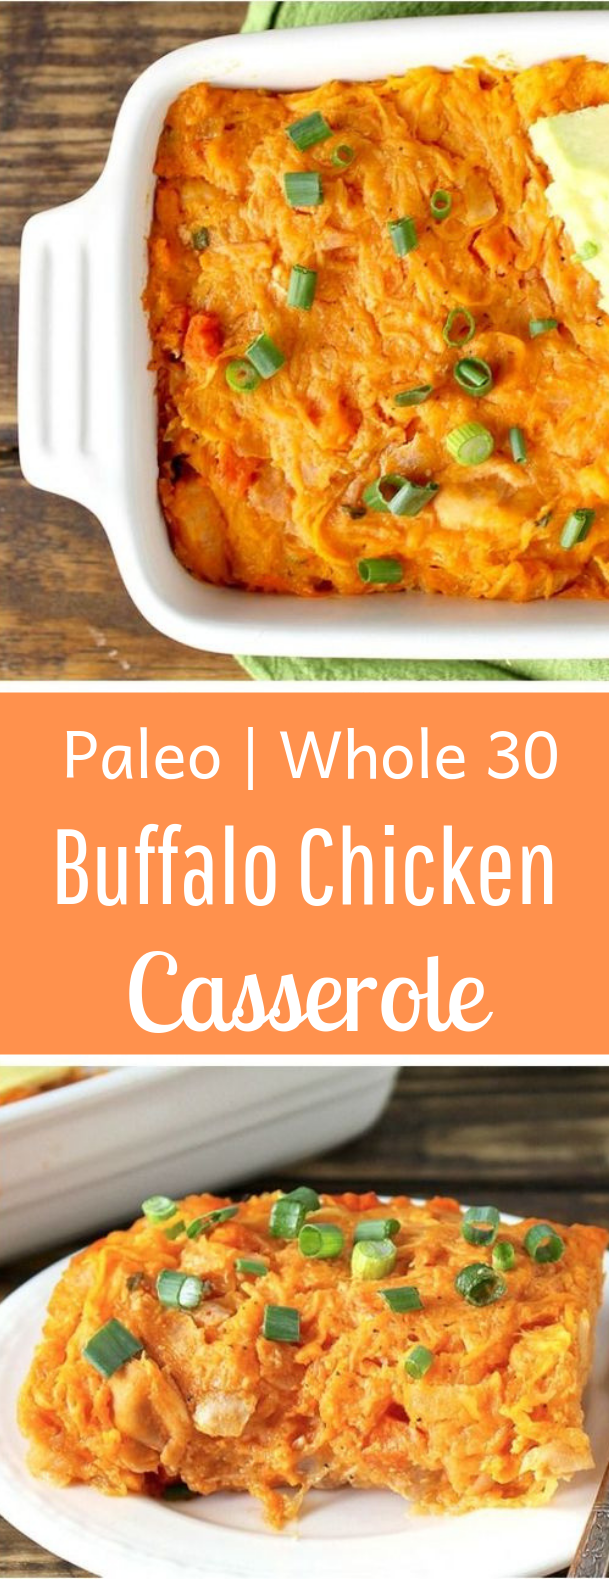 Paleo Buffalo Chicken Casserole #whole30 #healthy